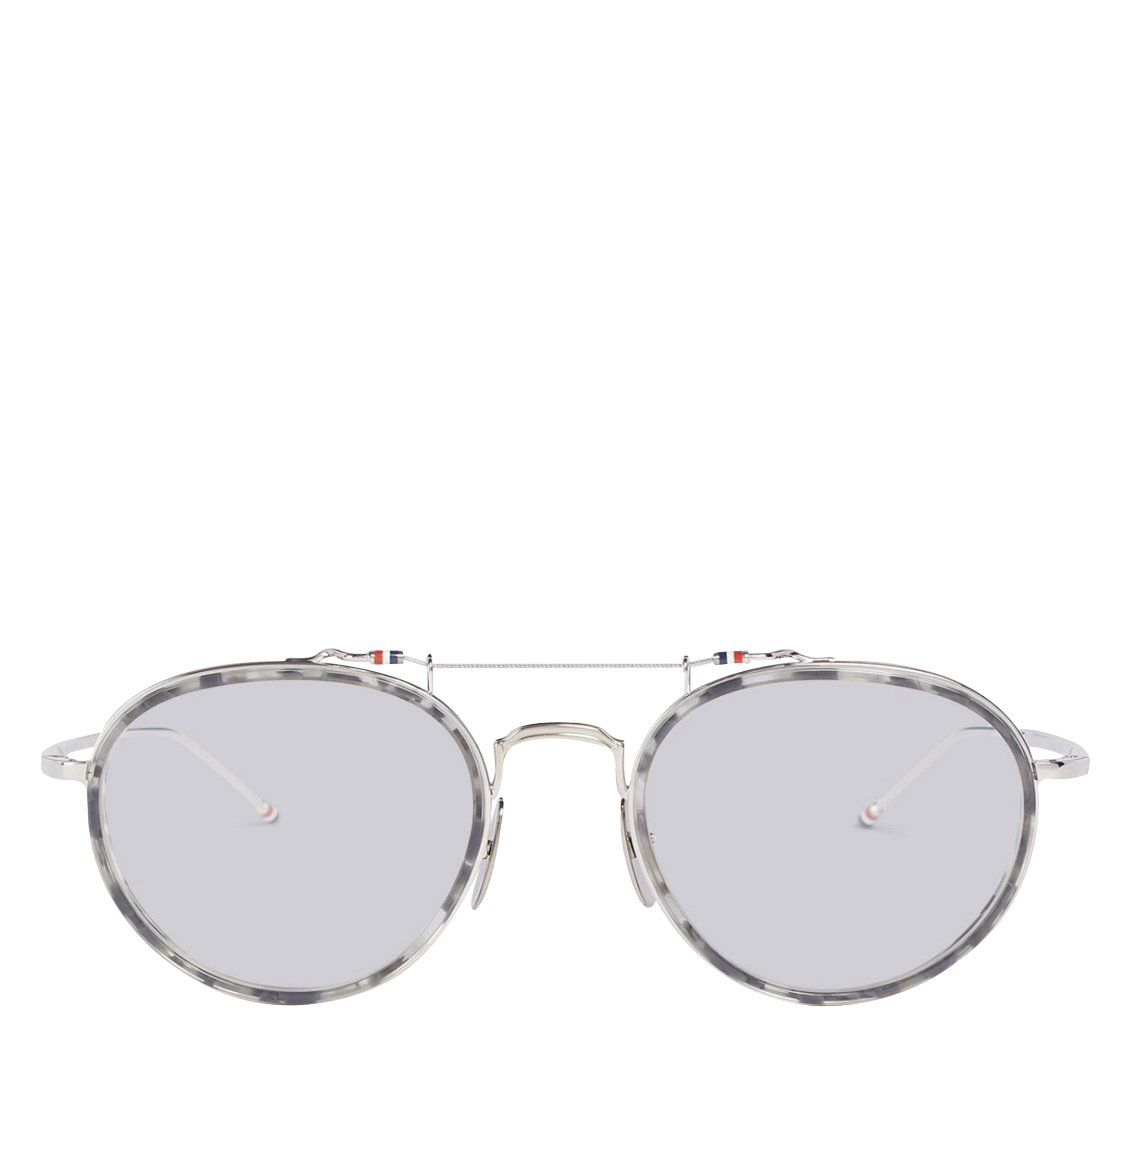 Thom Browne Grey Tortoiseshell Oval Sunglasses Γυαλιά Ηλίου